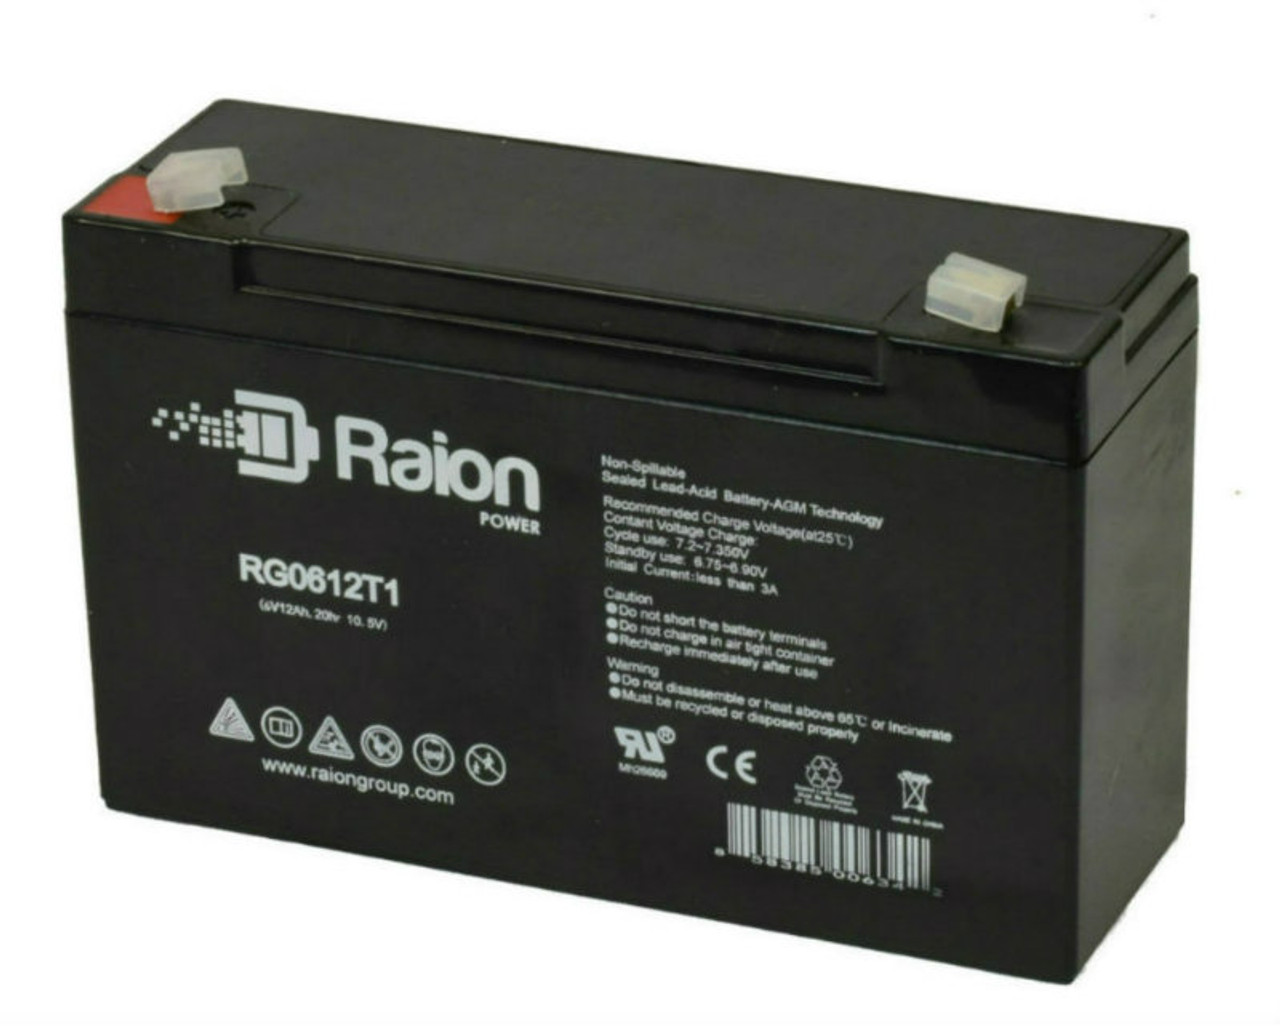 Raion Power RG06120T1 Replacement Battery Pack for Holophane M12 emergency light